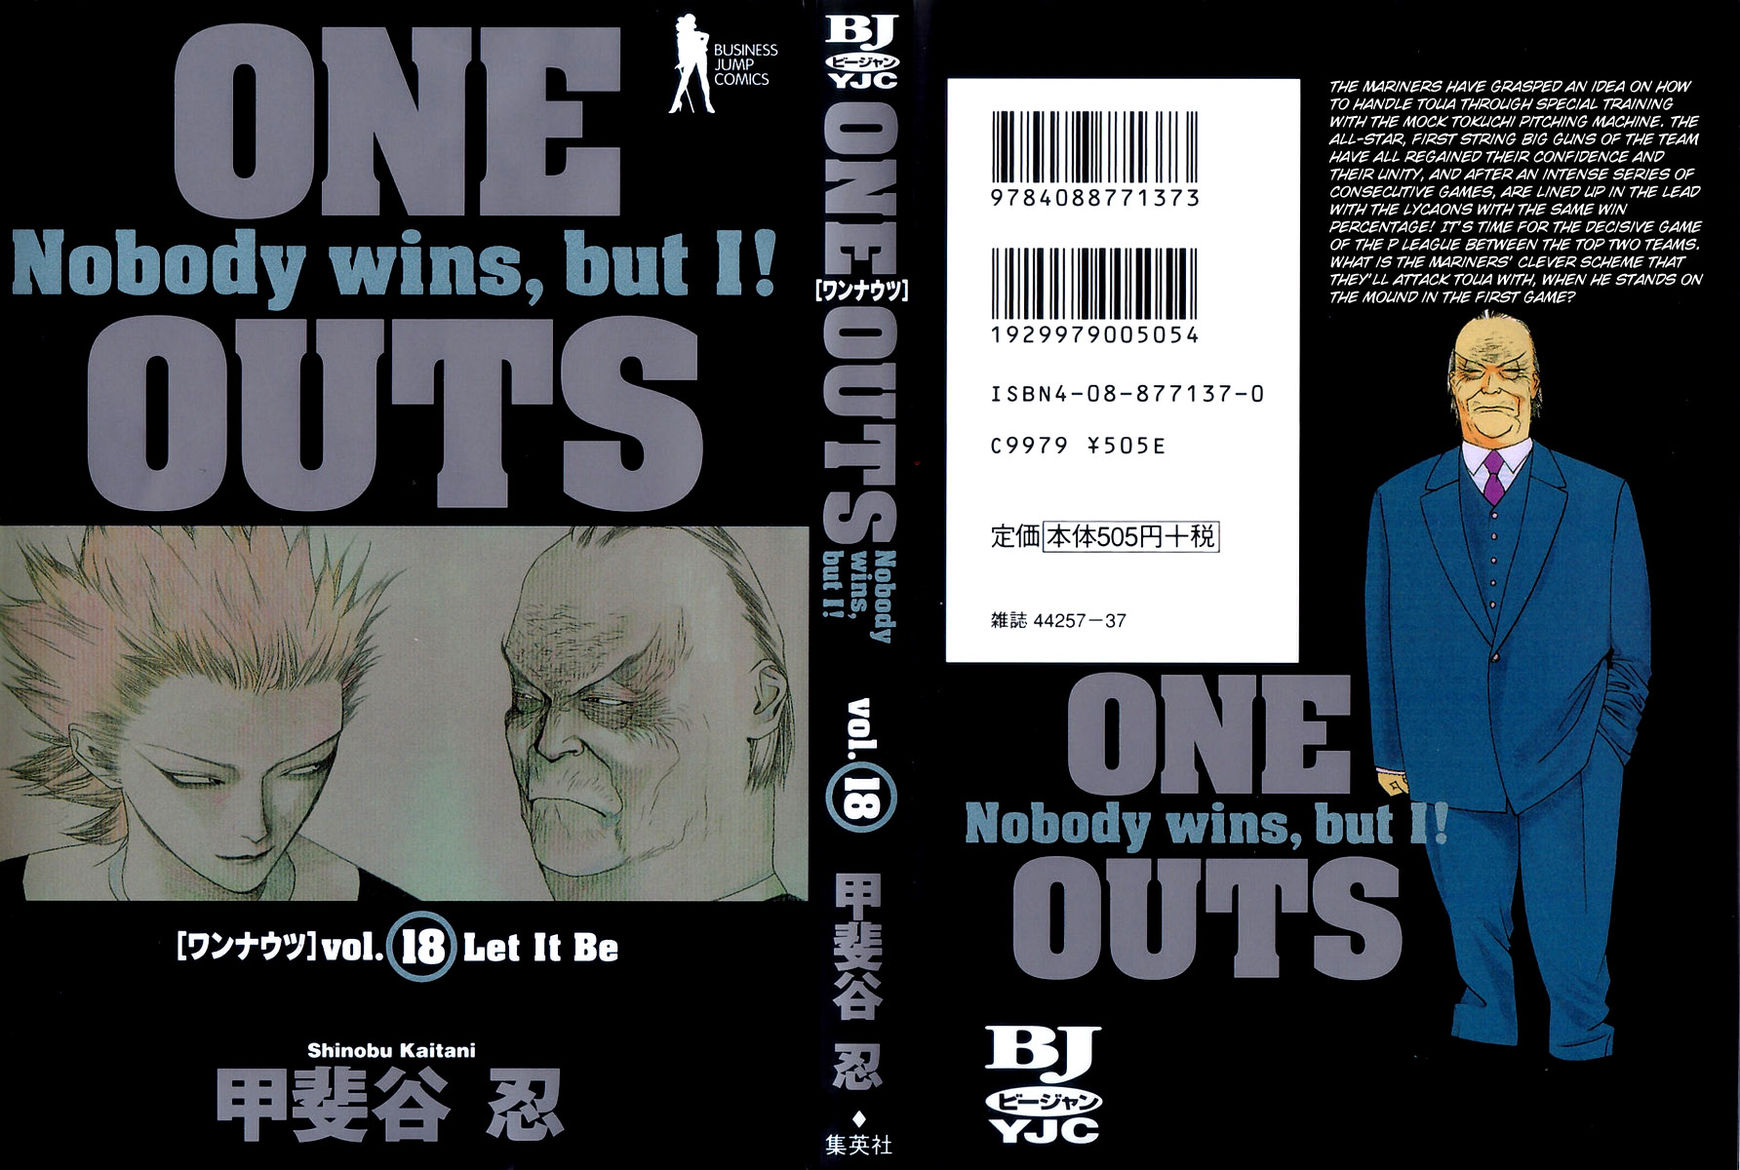 One Outs 151 Page 2